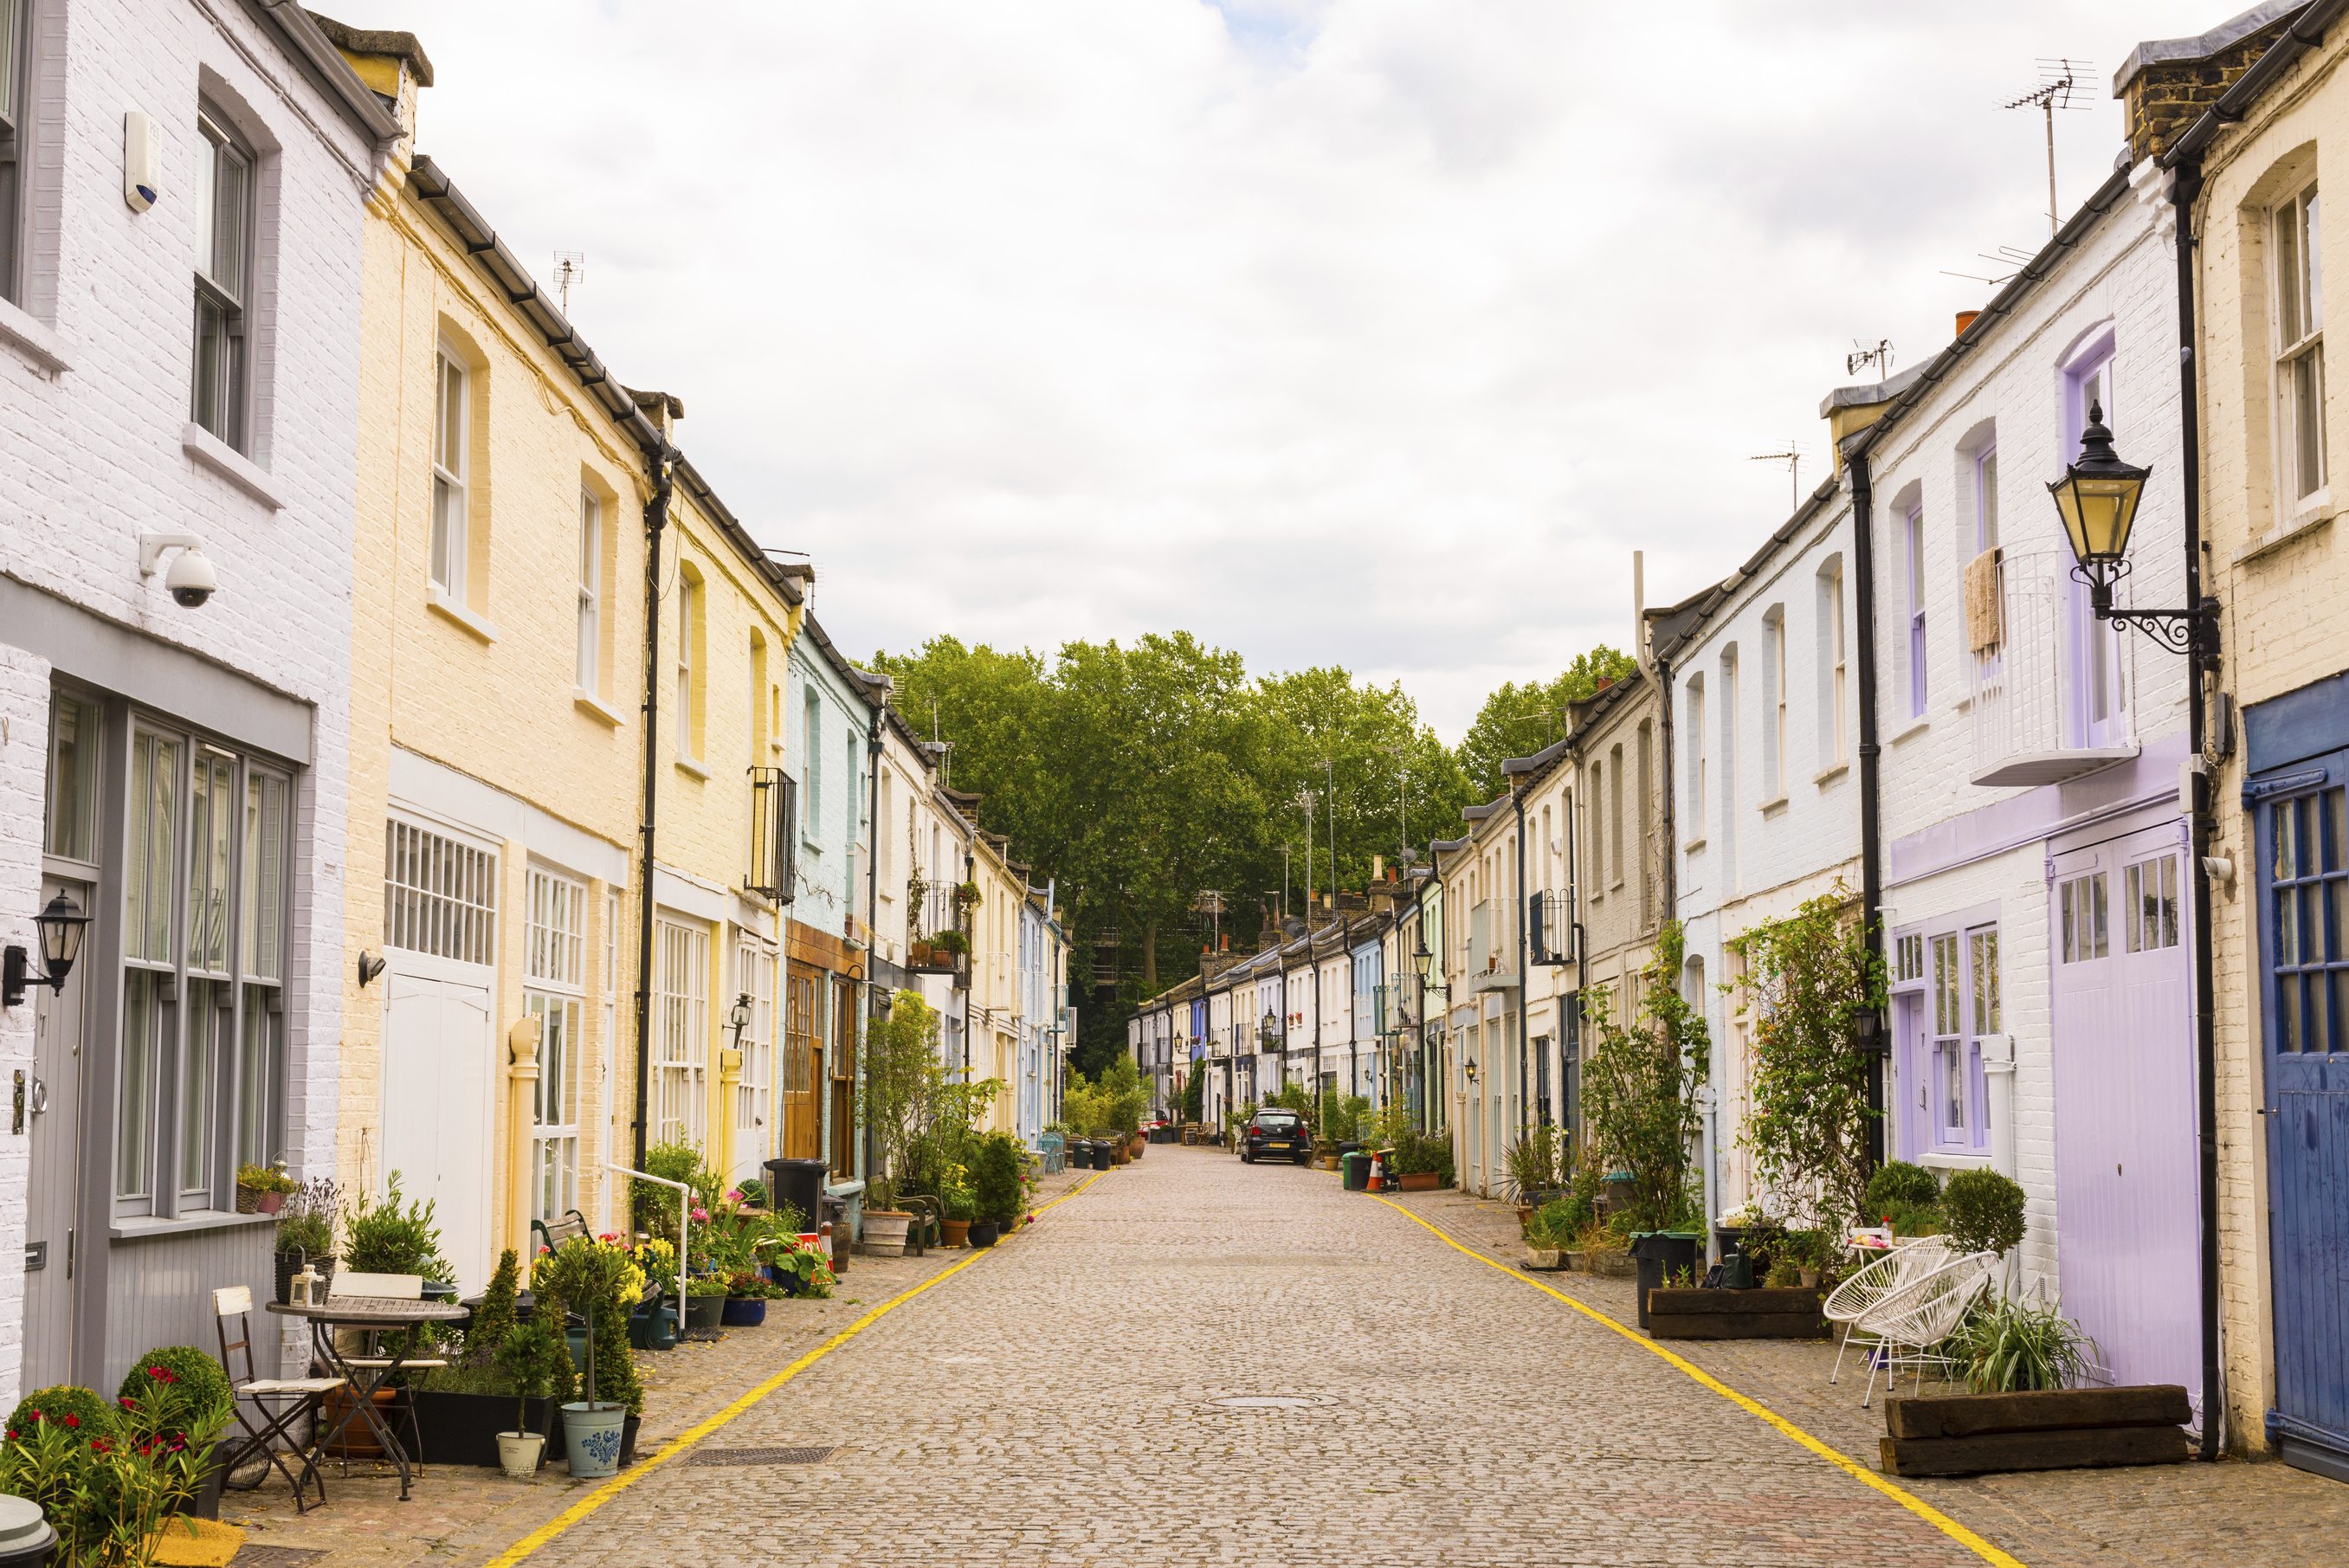 Where can you buy a house for under £200,000? – Which? News